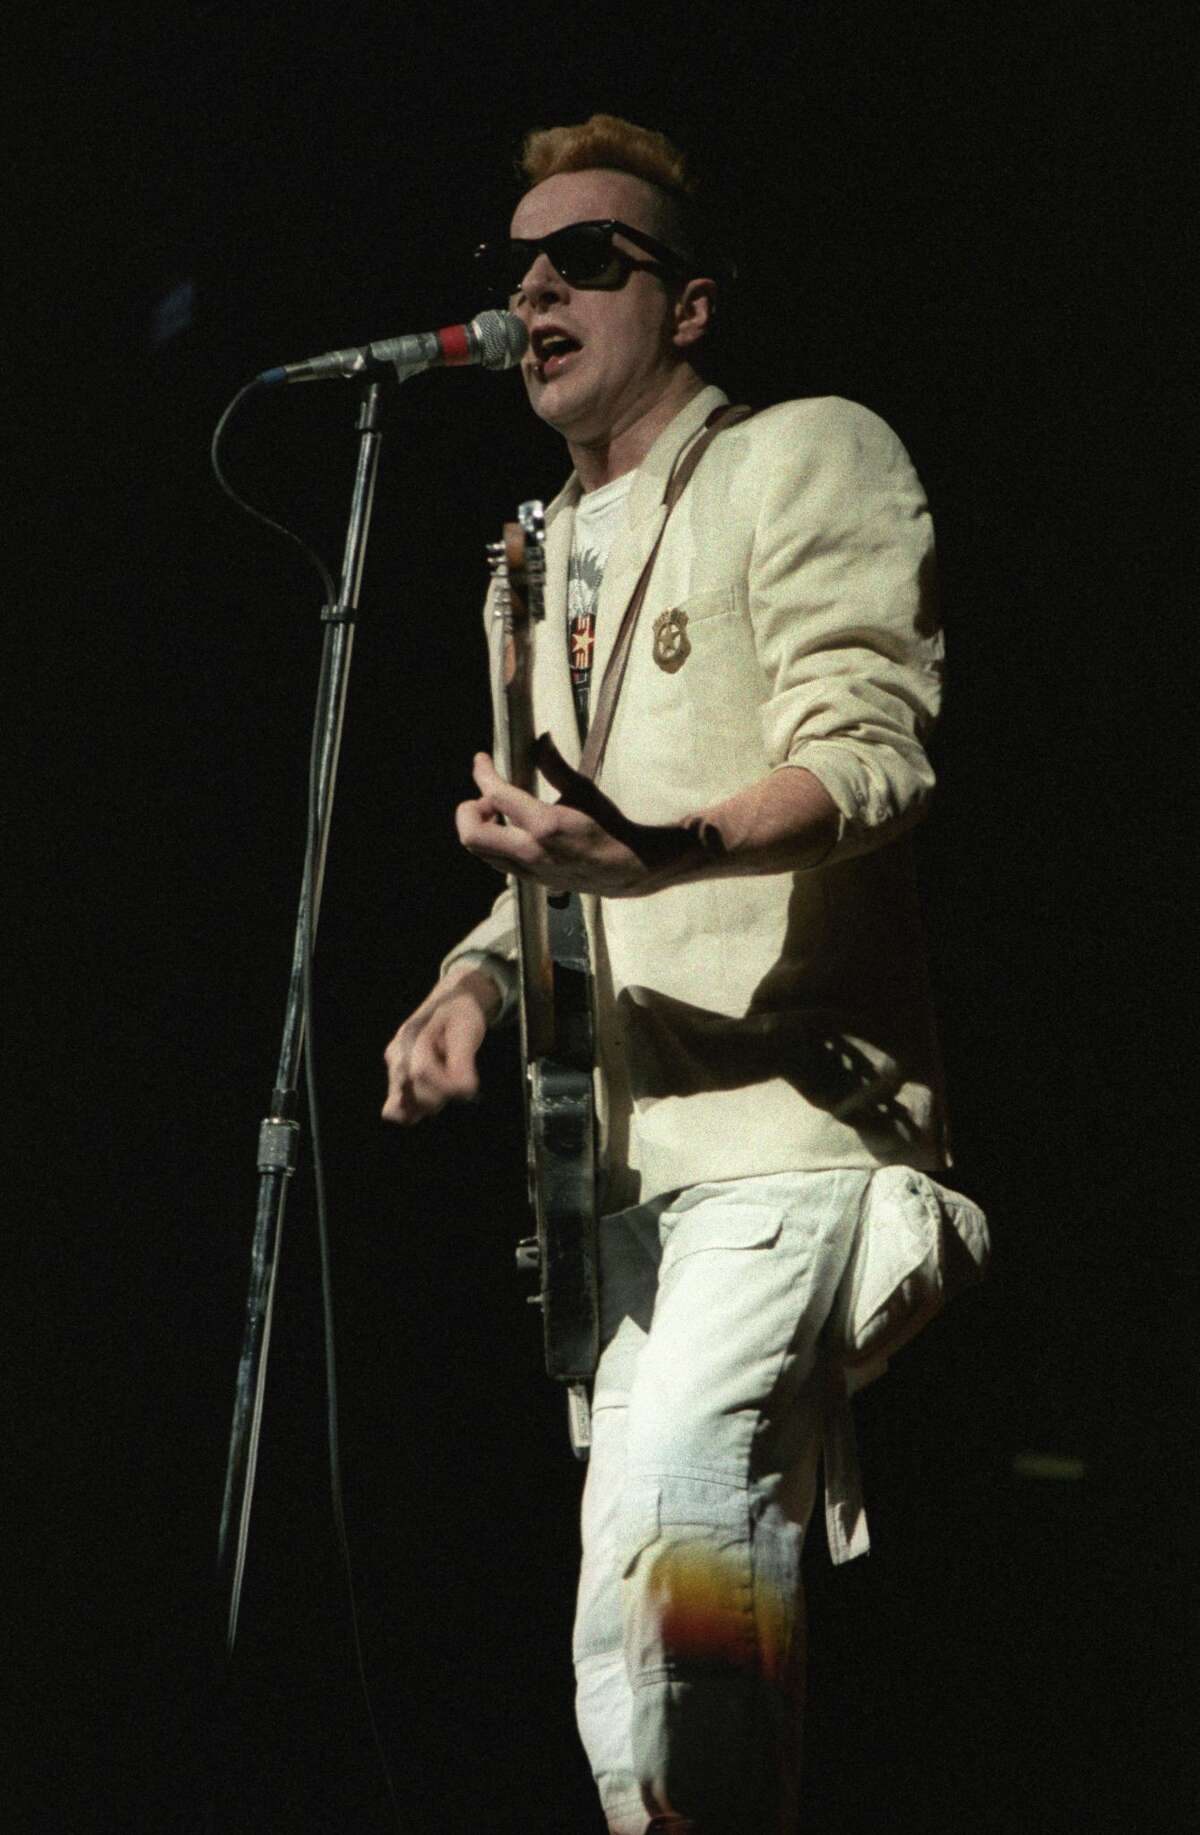 ST. PAUL, MN - MAY 15: Joe Strummer of the punk rock band The Clash performs at the St. Paul Civic Center in St. Paul, Minnesota on May 15, 1984. (Photo by Jim Steinfeldt/Michael Ochs Archives/Getty Images)